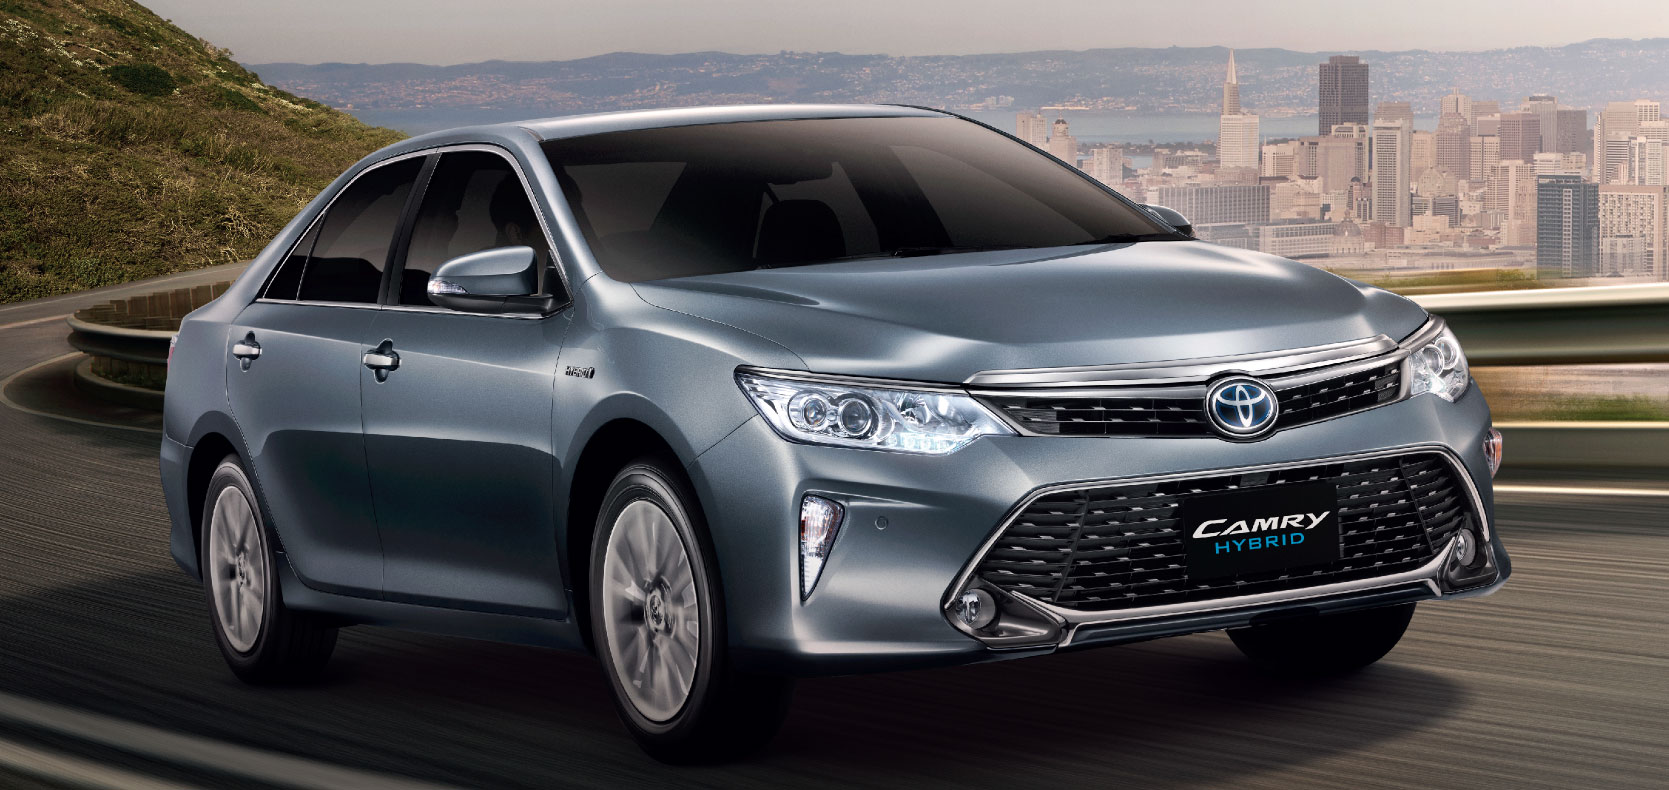 2015 toyota camry facelift range launched in thailand gets new 2 0l vvt iw. Black Bedroom Furniture Sets. Home Design Ideas